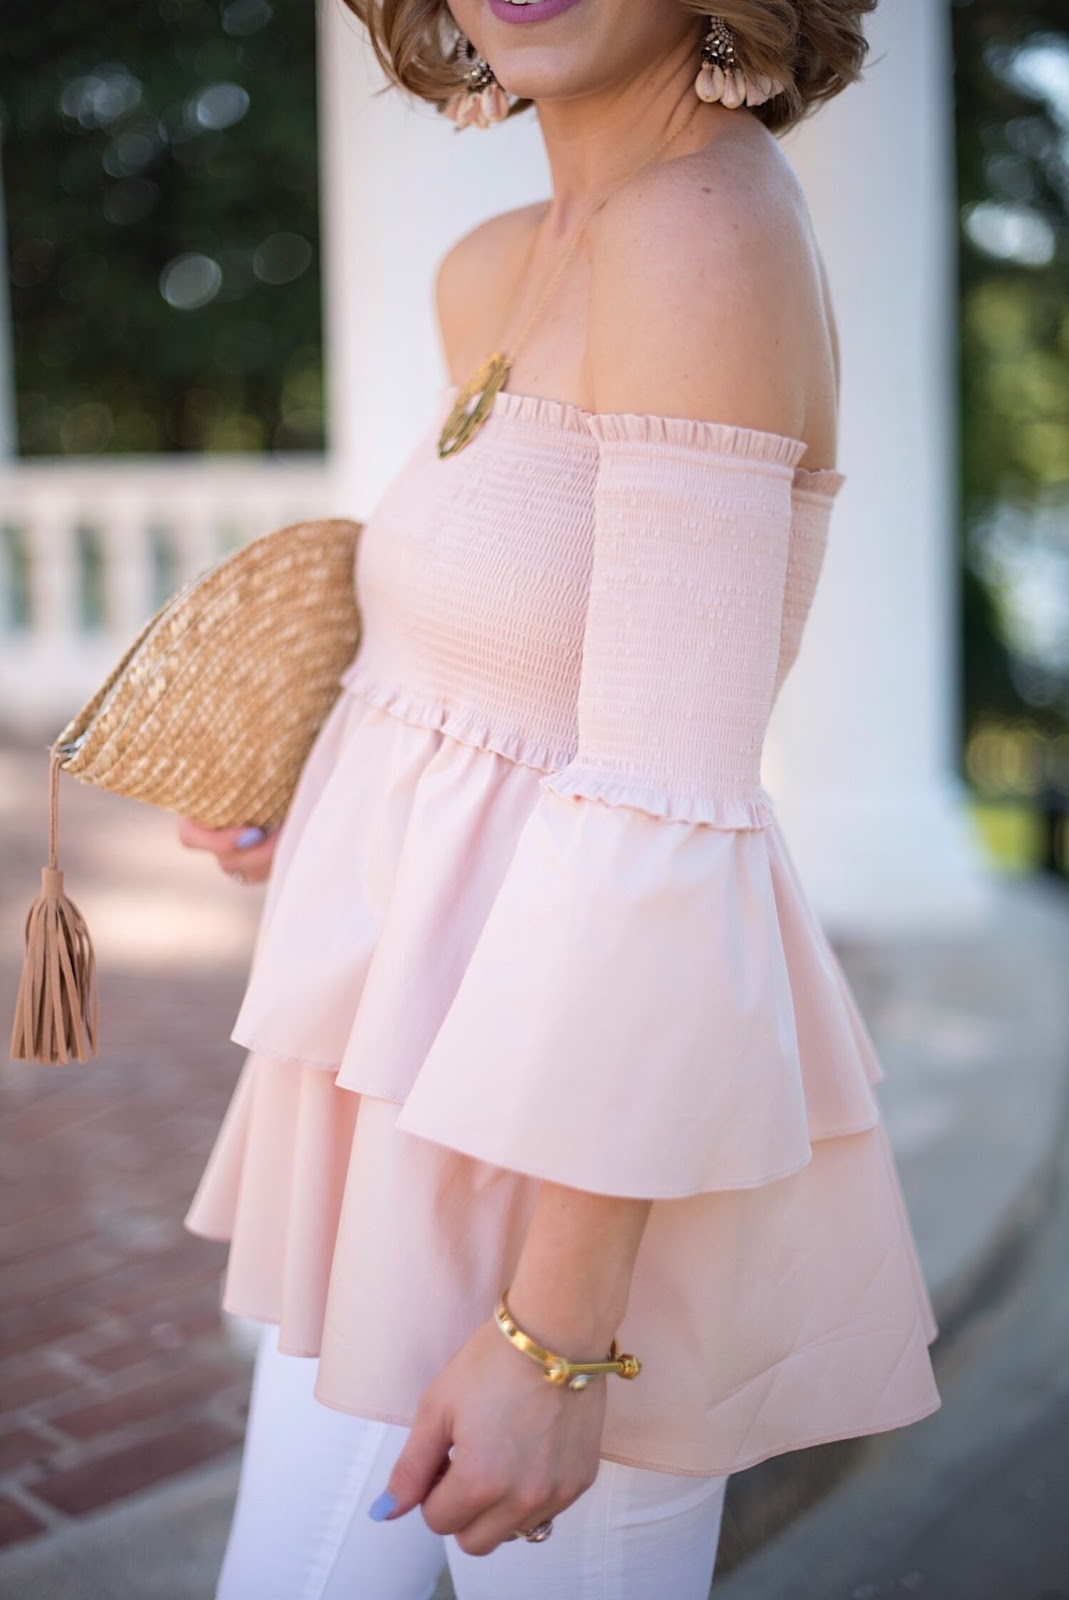 Blush Smock OTS Top - Click through to see more on Something Delightful Blog :)